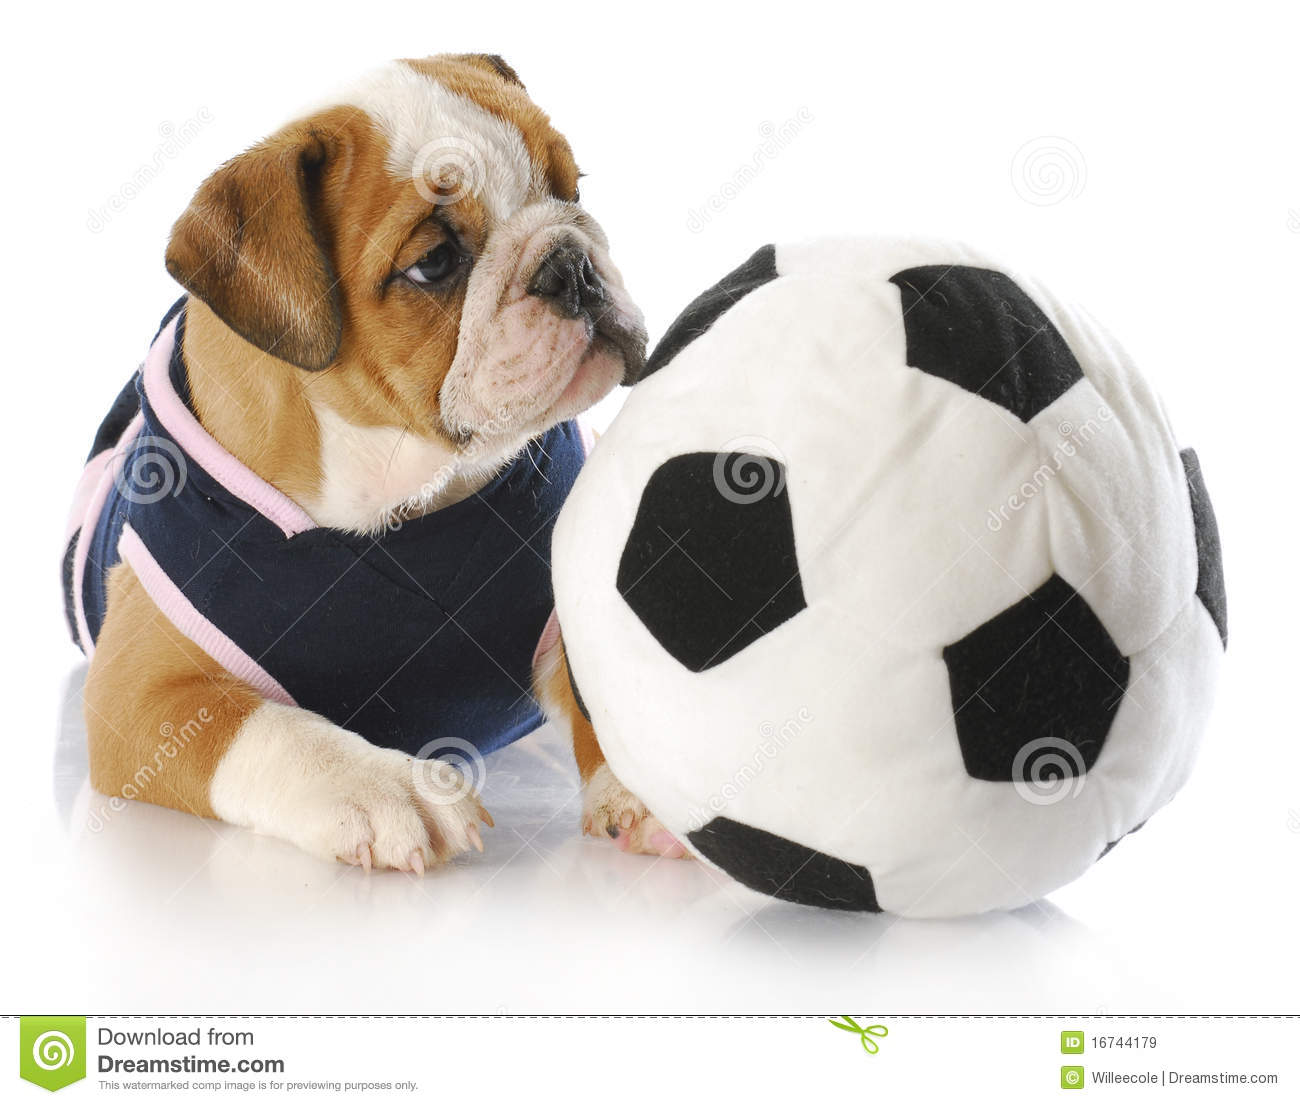 English bulldog puppy female wearing sports jersey playing with soccer ball 0a5d20a9a